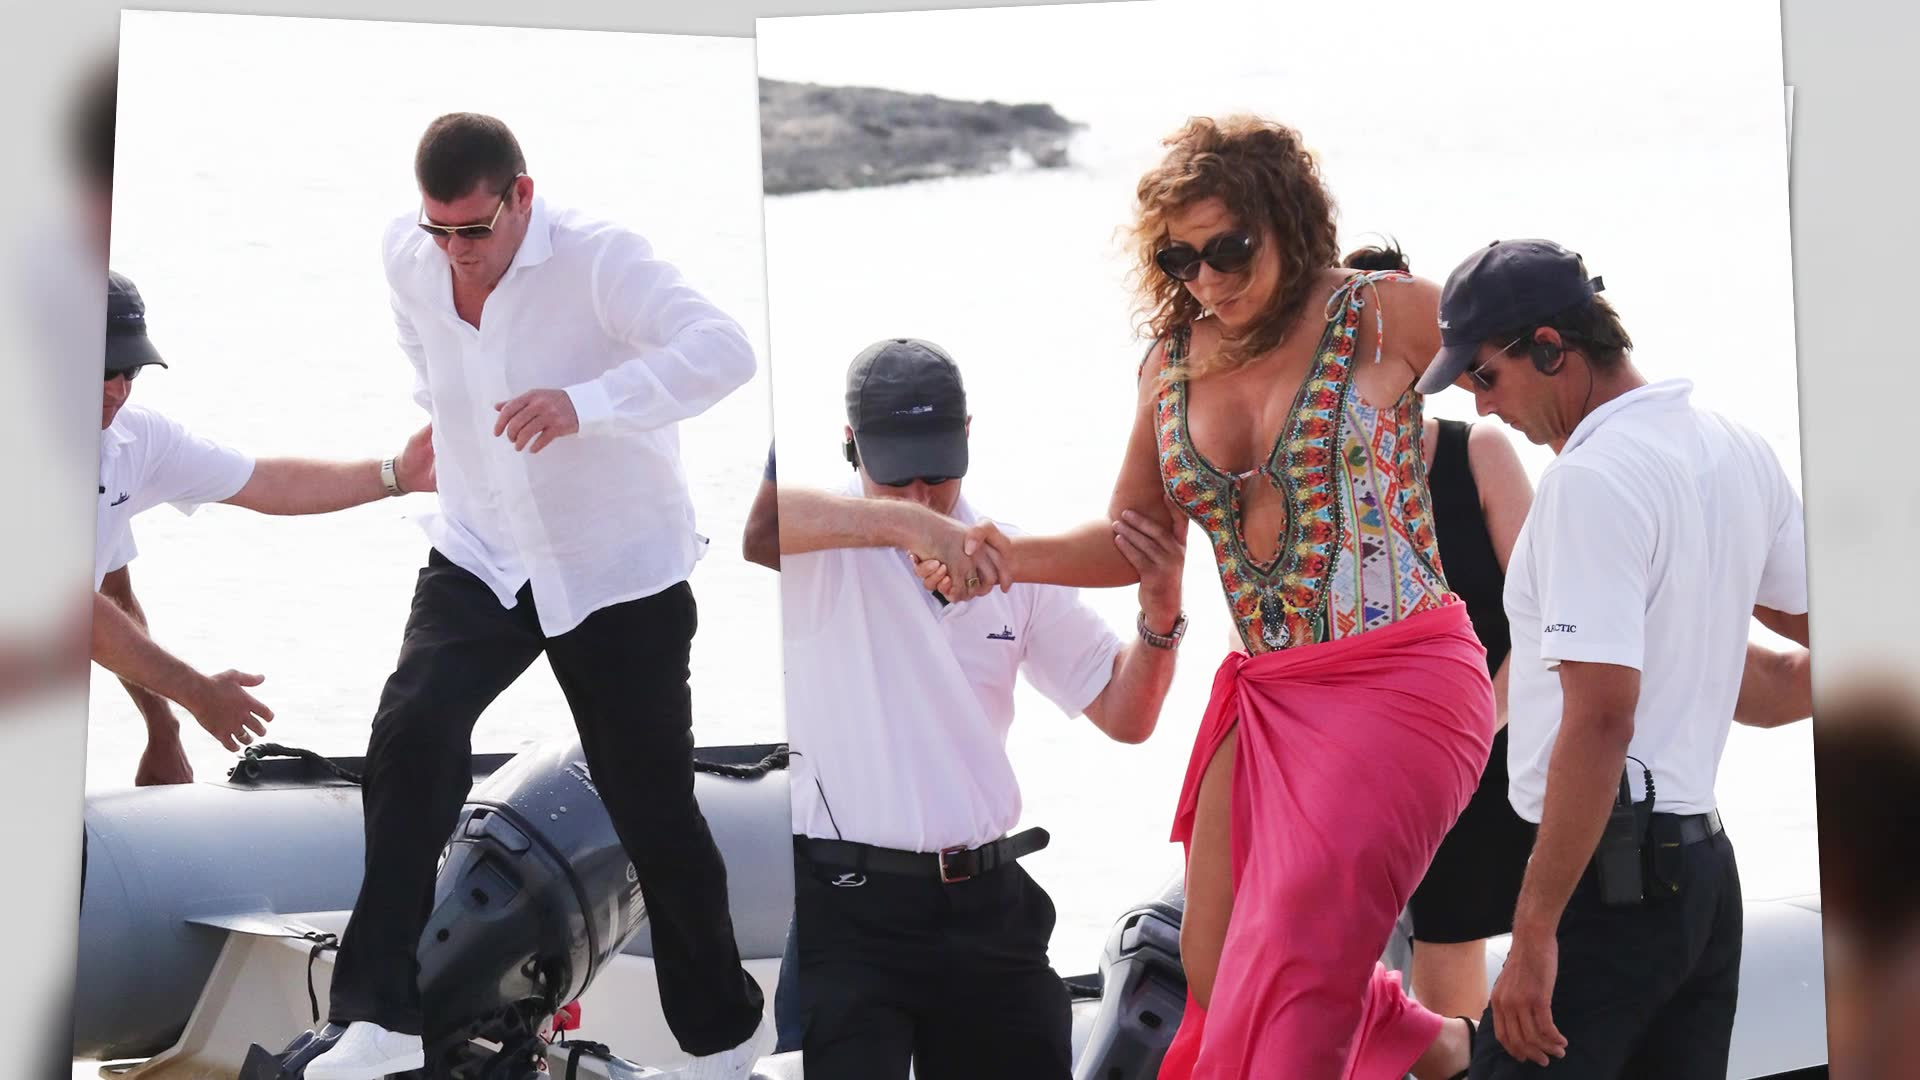 Mariah Carey Gets A Cheeky Squeeze As She Steps Off Super Yacht